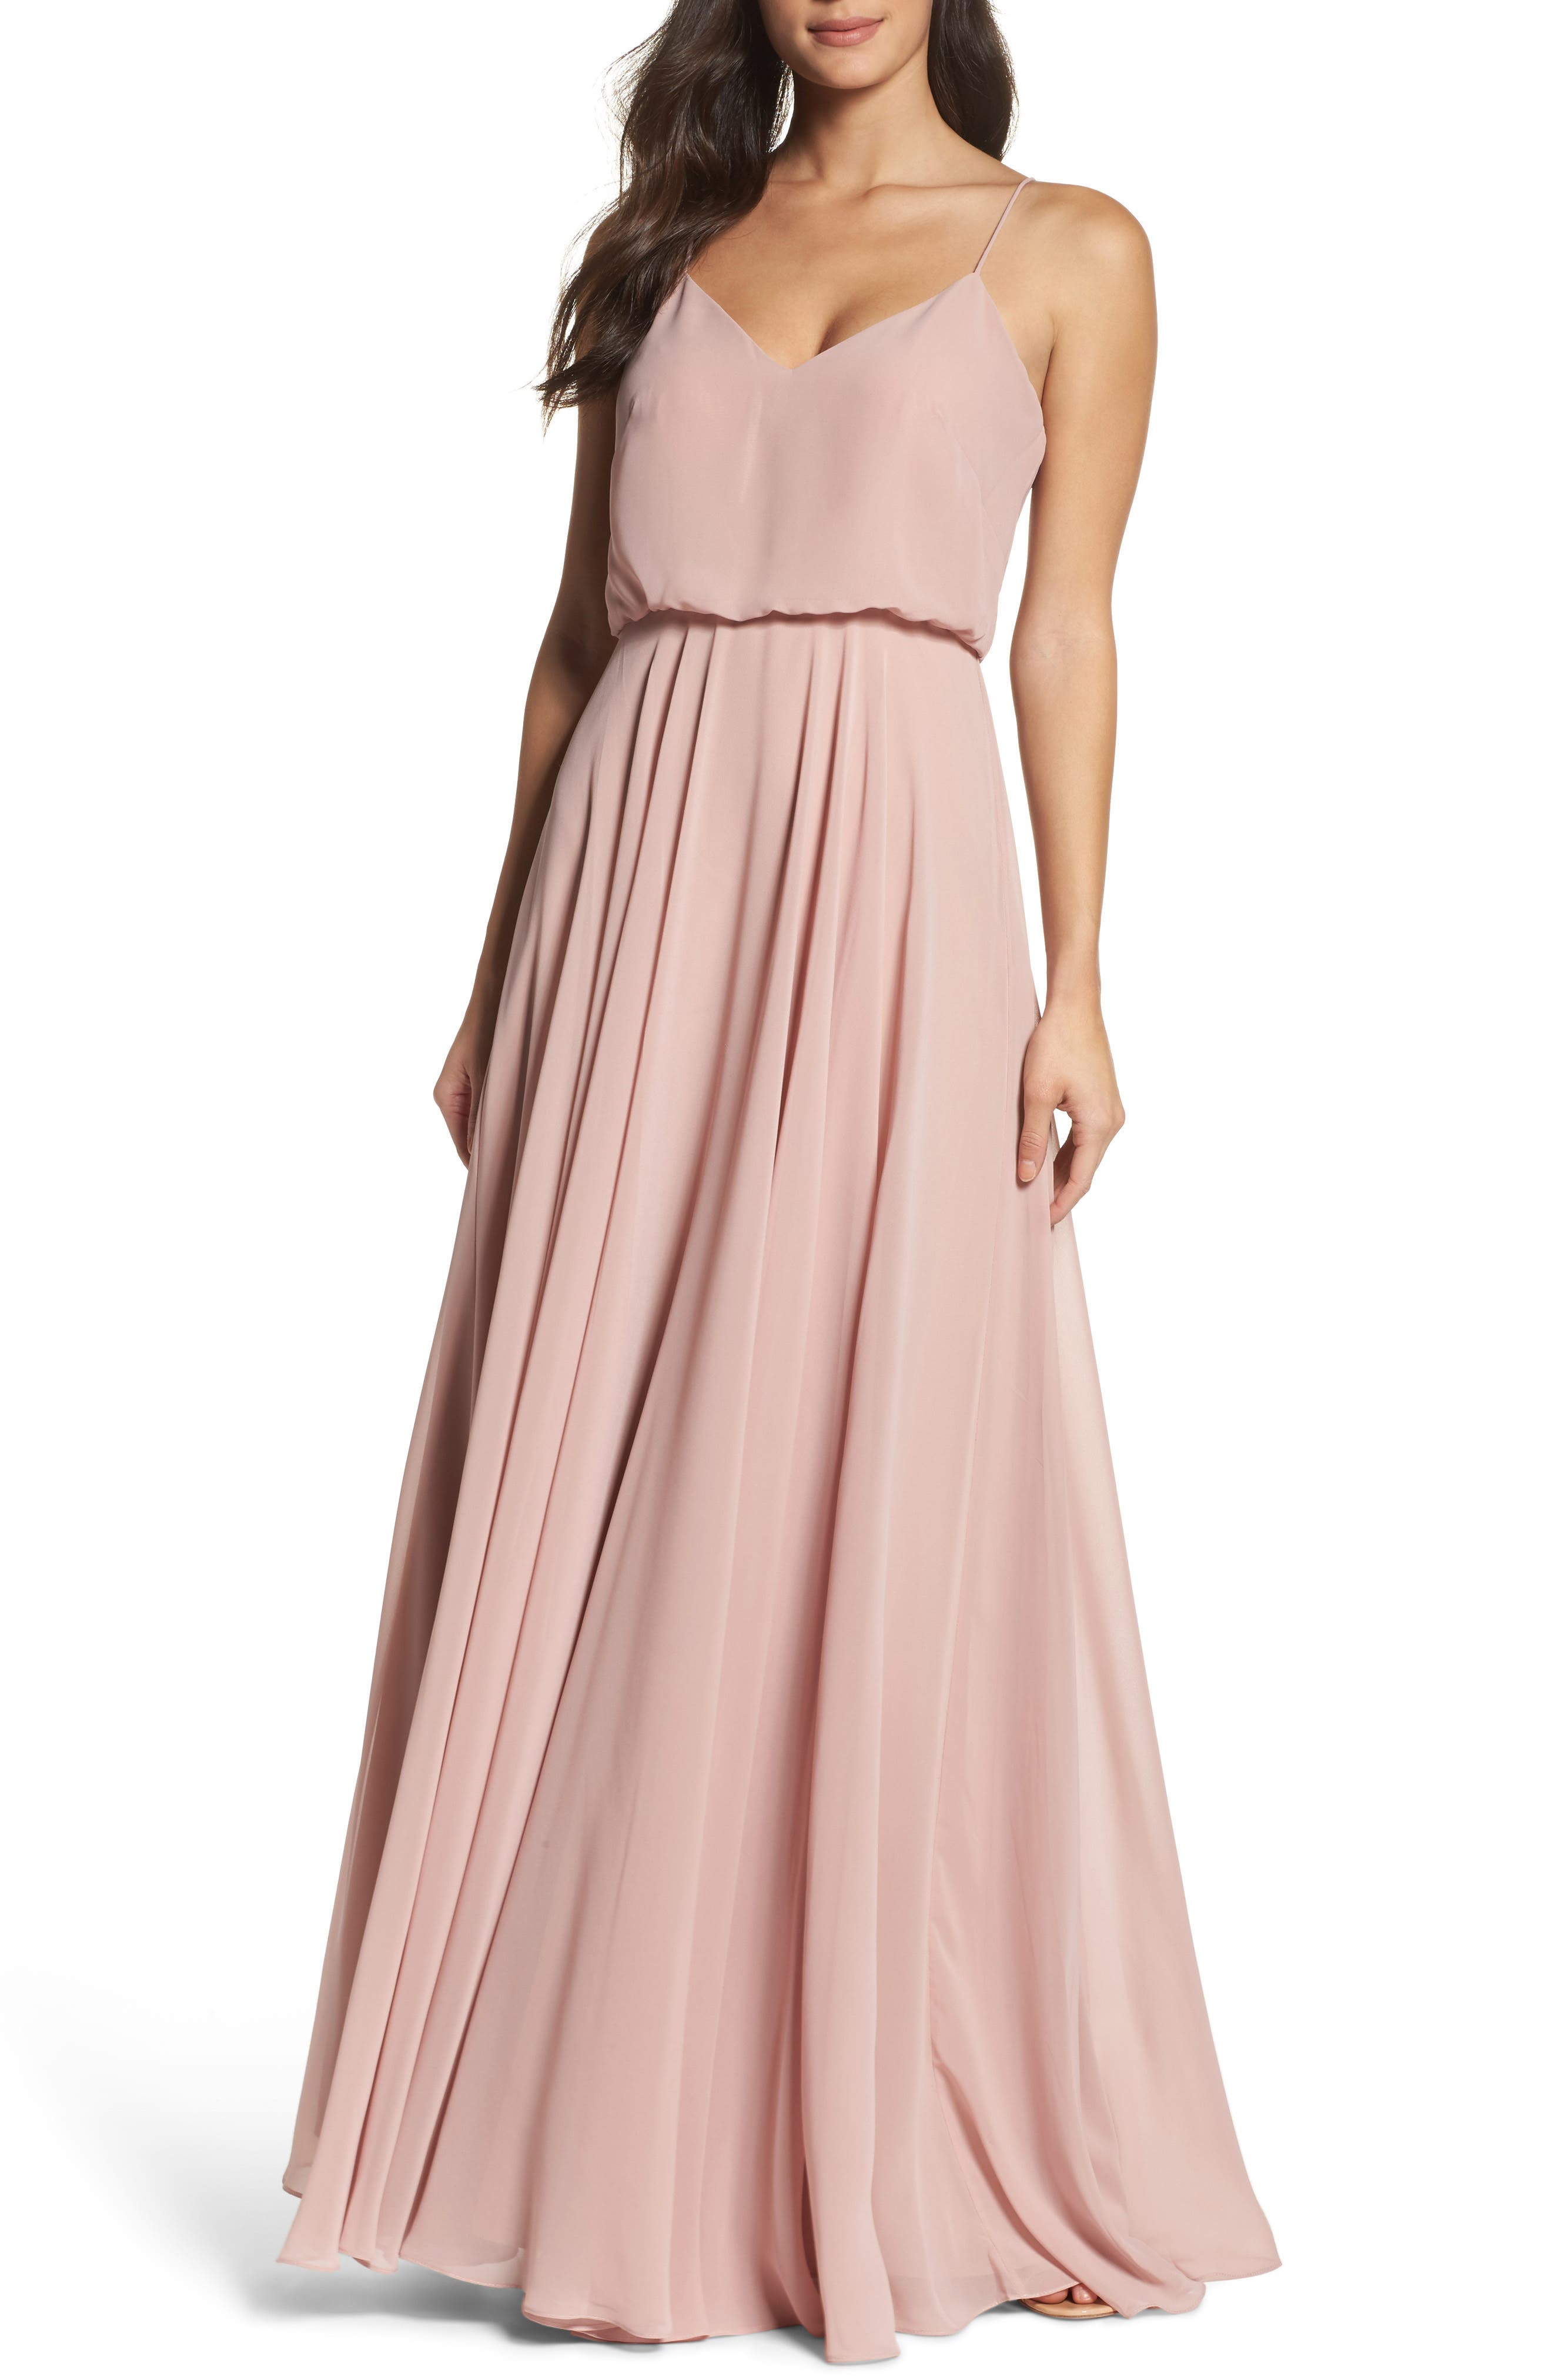 JENNY YOO, Inesse Chiffon V-Neck Spaghetti Strap Gown, Main thumbnail 1, color, WHIPPED APRICOT